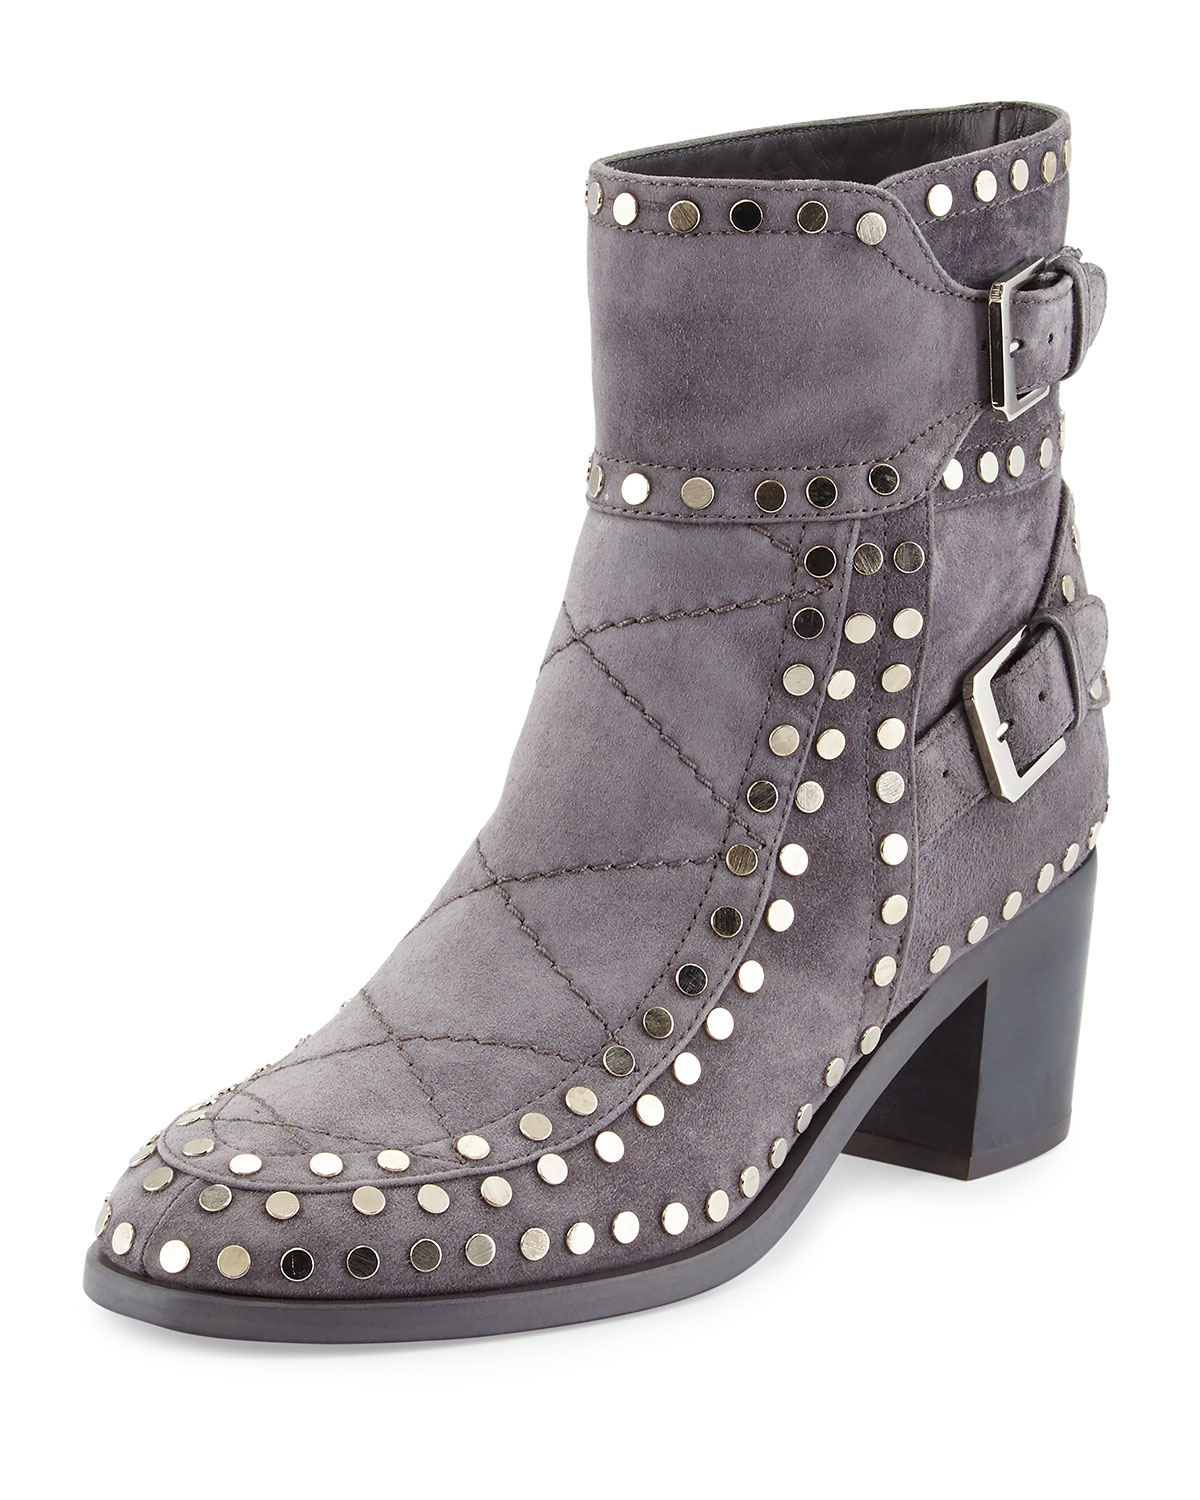 Laurence Dacade Boots – Fall/Winter 2013-2014